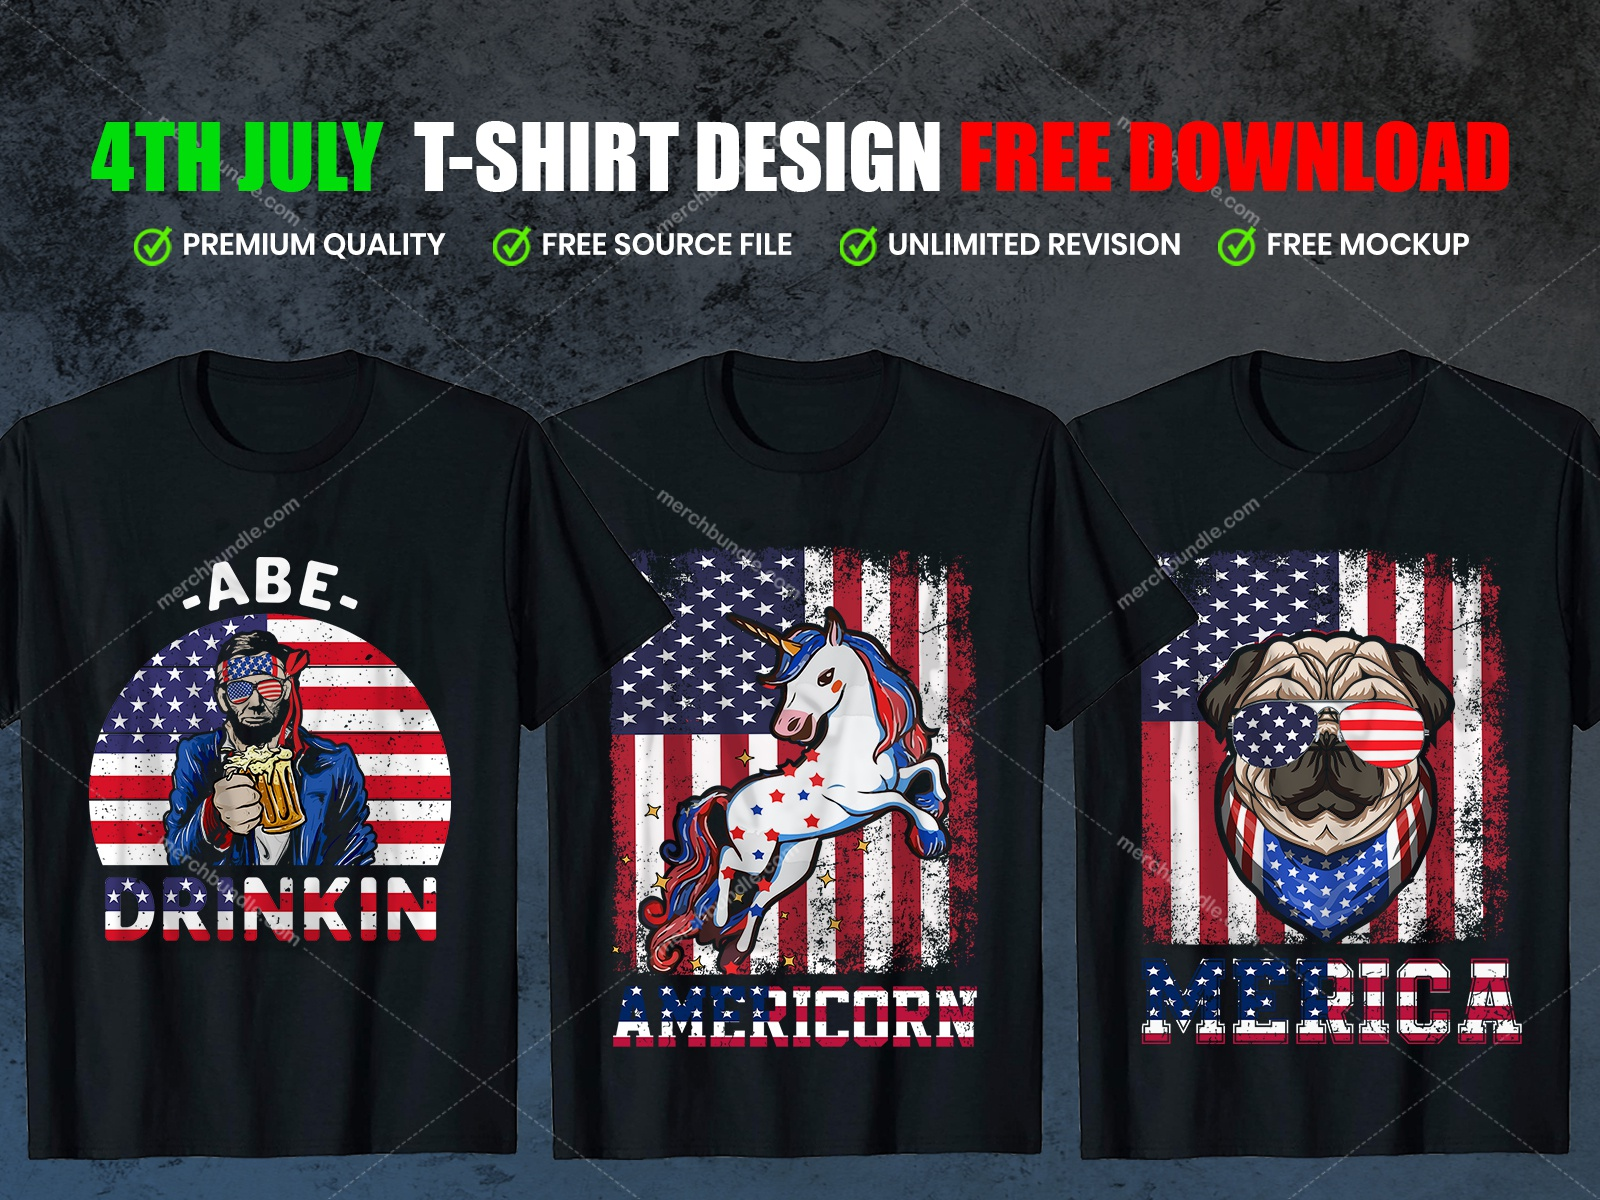 4th July T Shirt Design Free Download By Shohagh Hossen On Dribbble